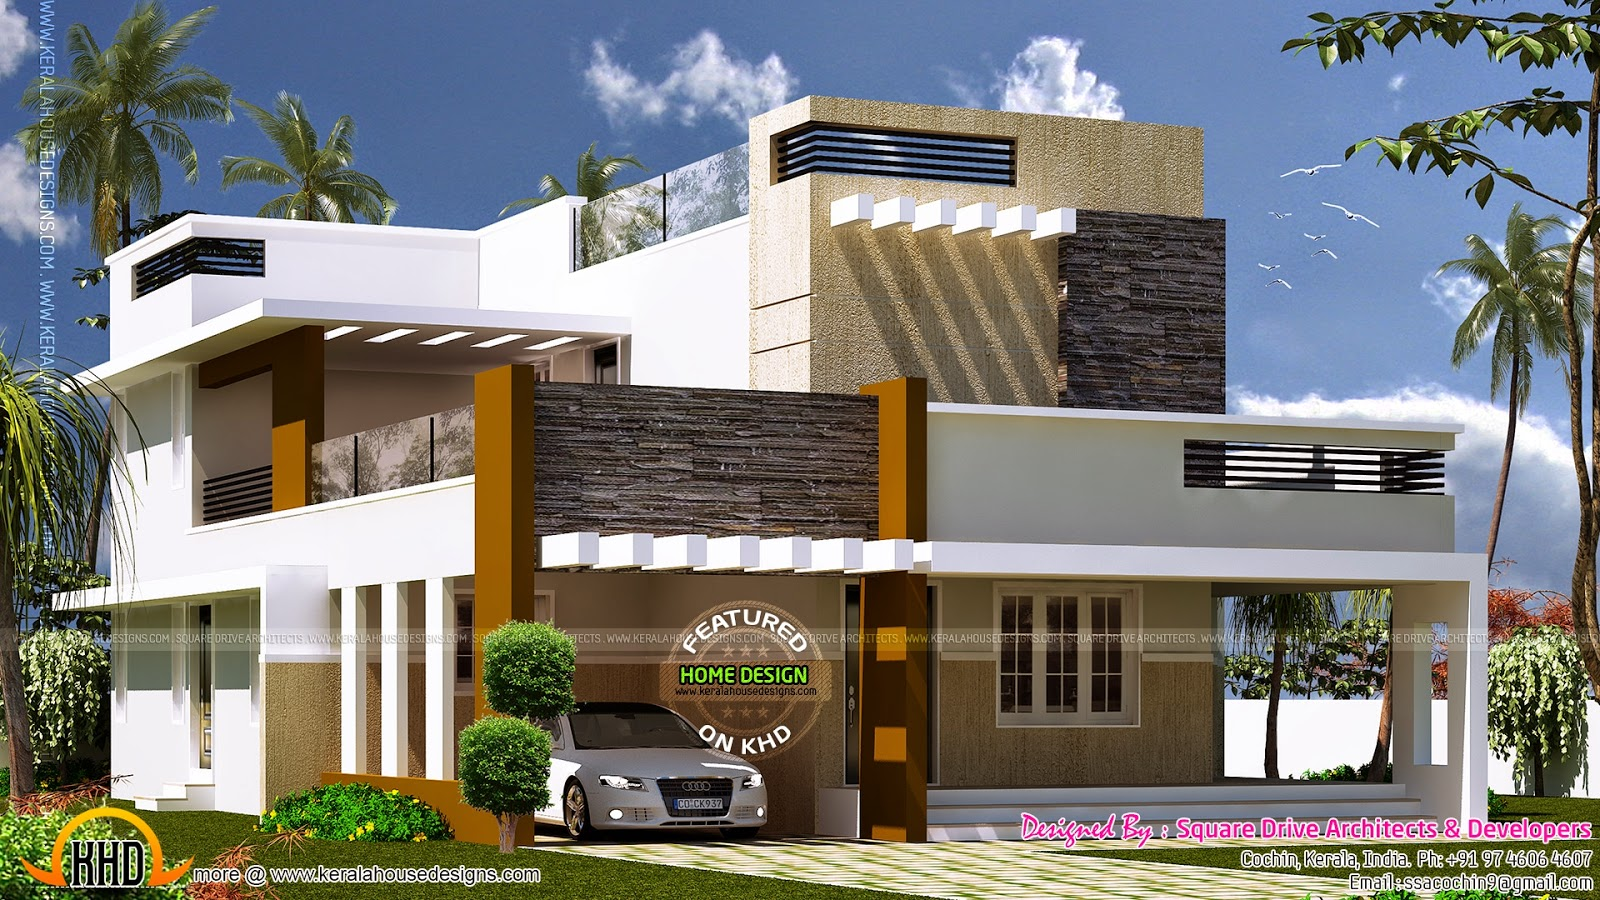 Exterior design of contemporary villa kerala home design for House exterior design pictures